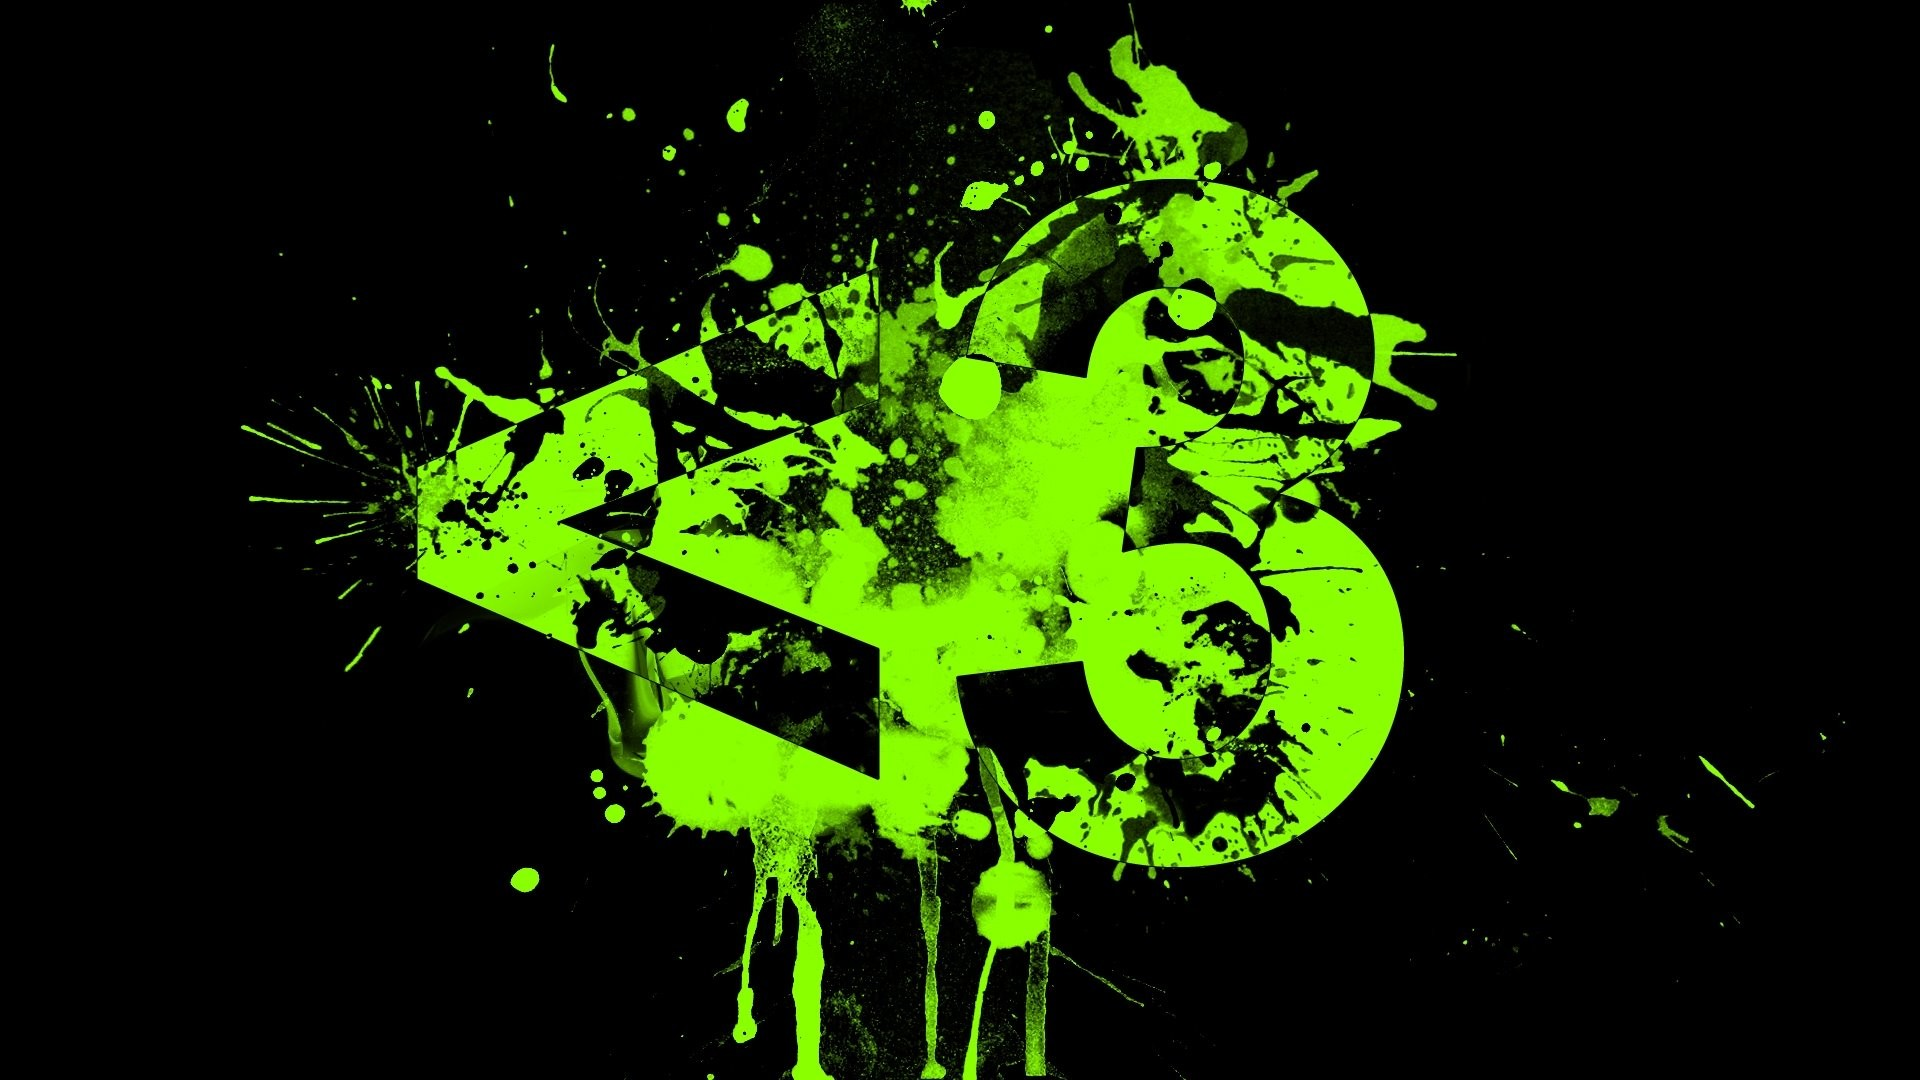 1920 x 1080 px wallpapers free lime green and black by Chisholm Allford  for: TWD